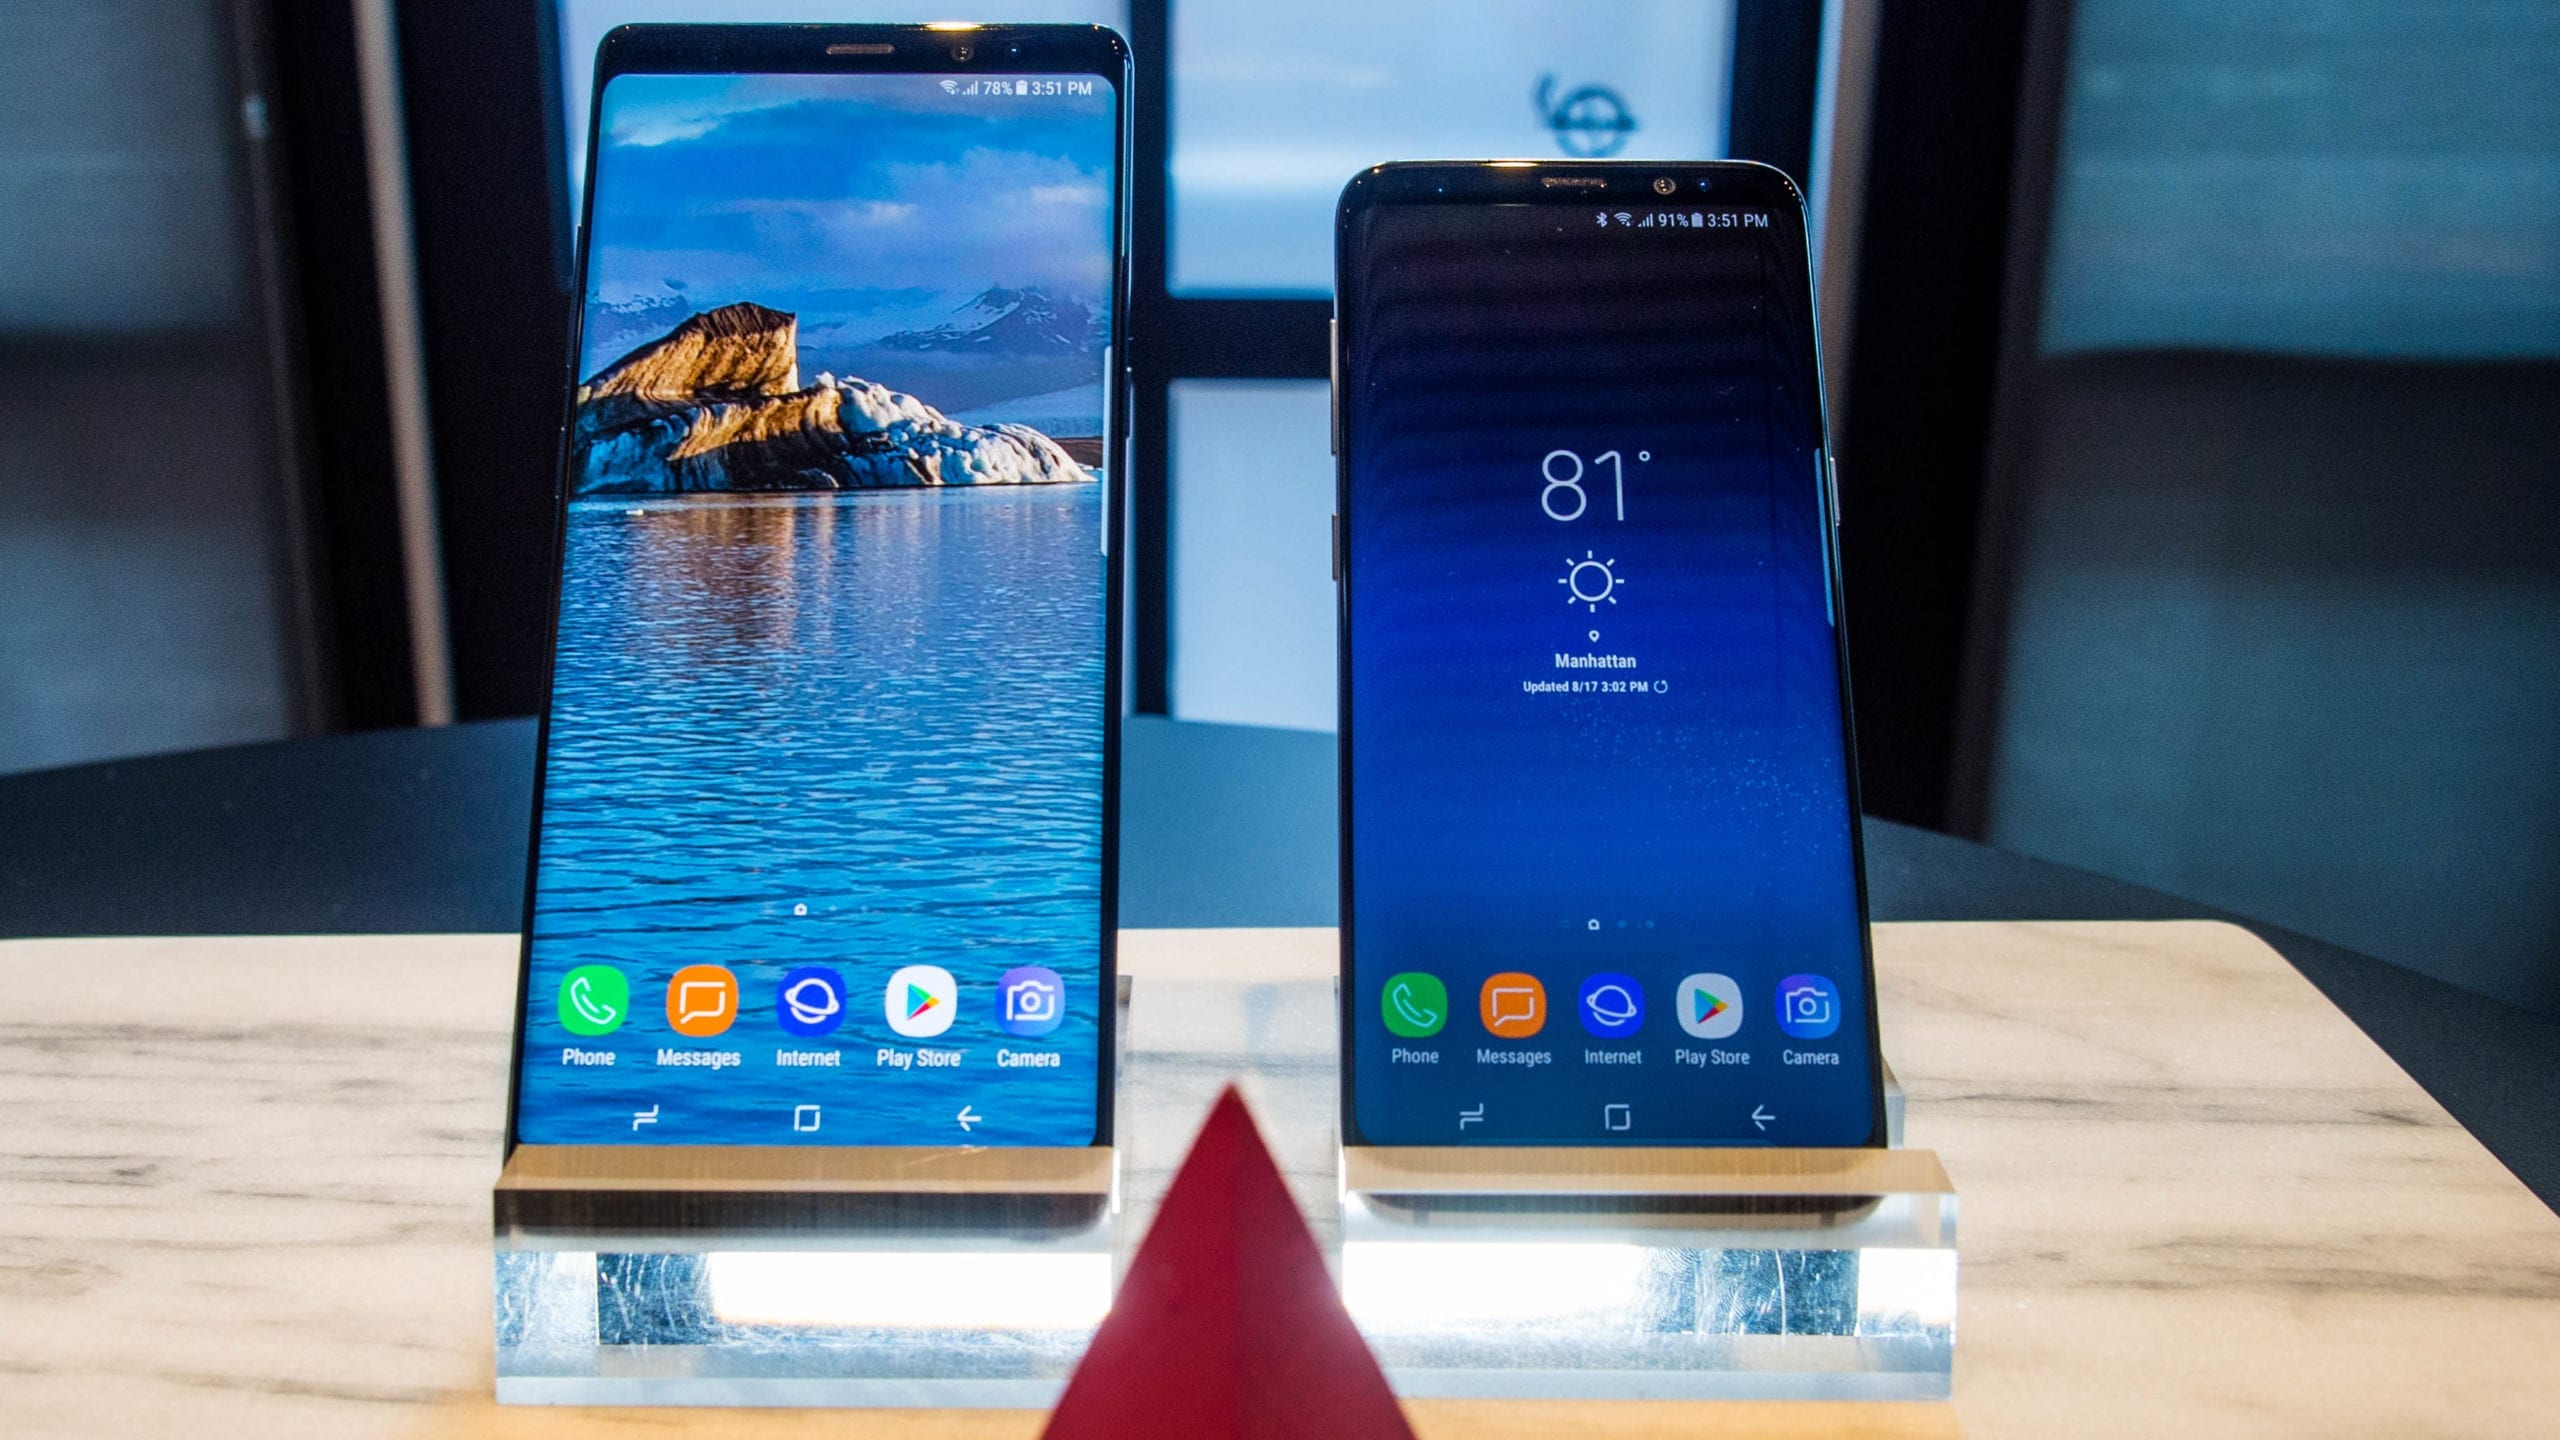 More pictures of the upcoming Samsung Galaxy Note 9 leak online